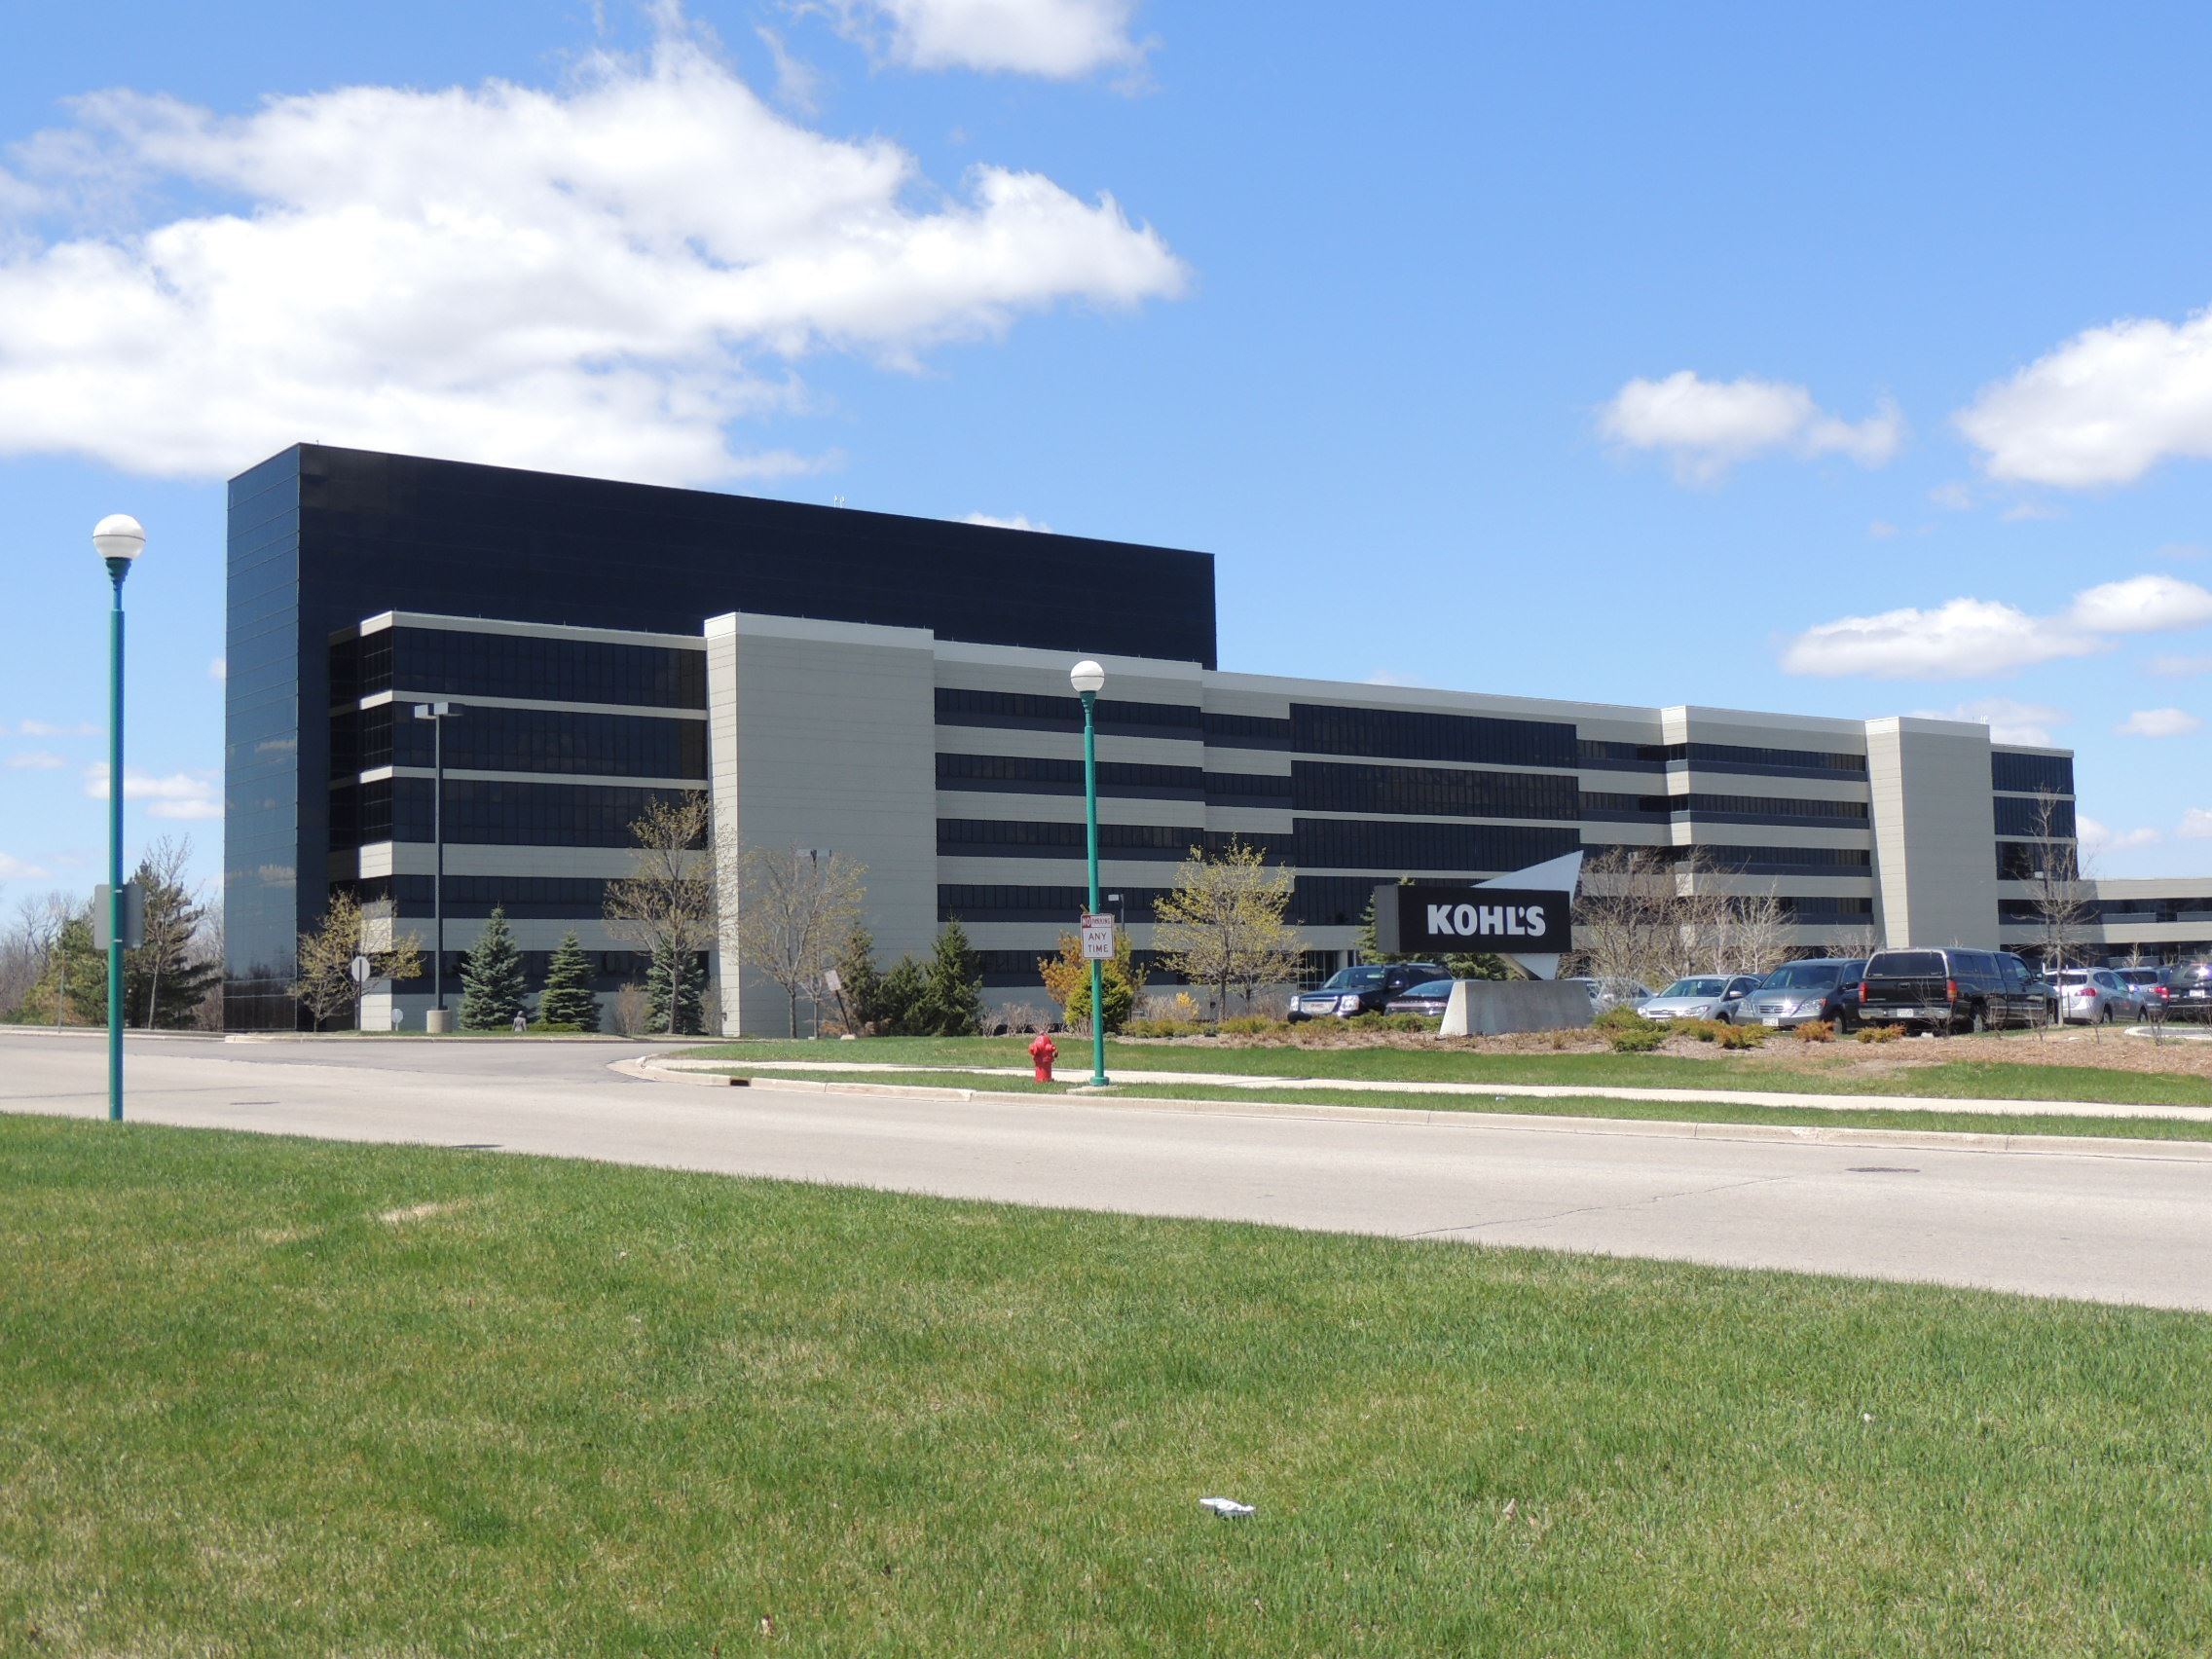 Kohl's Corporate Campus